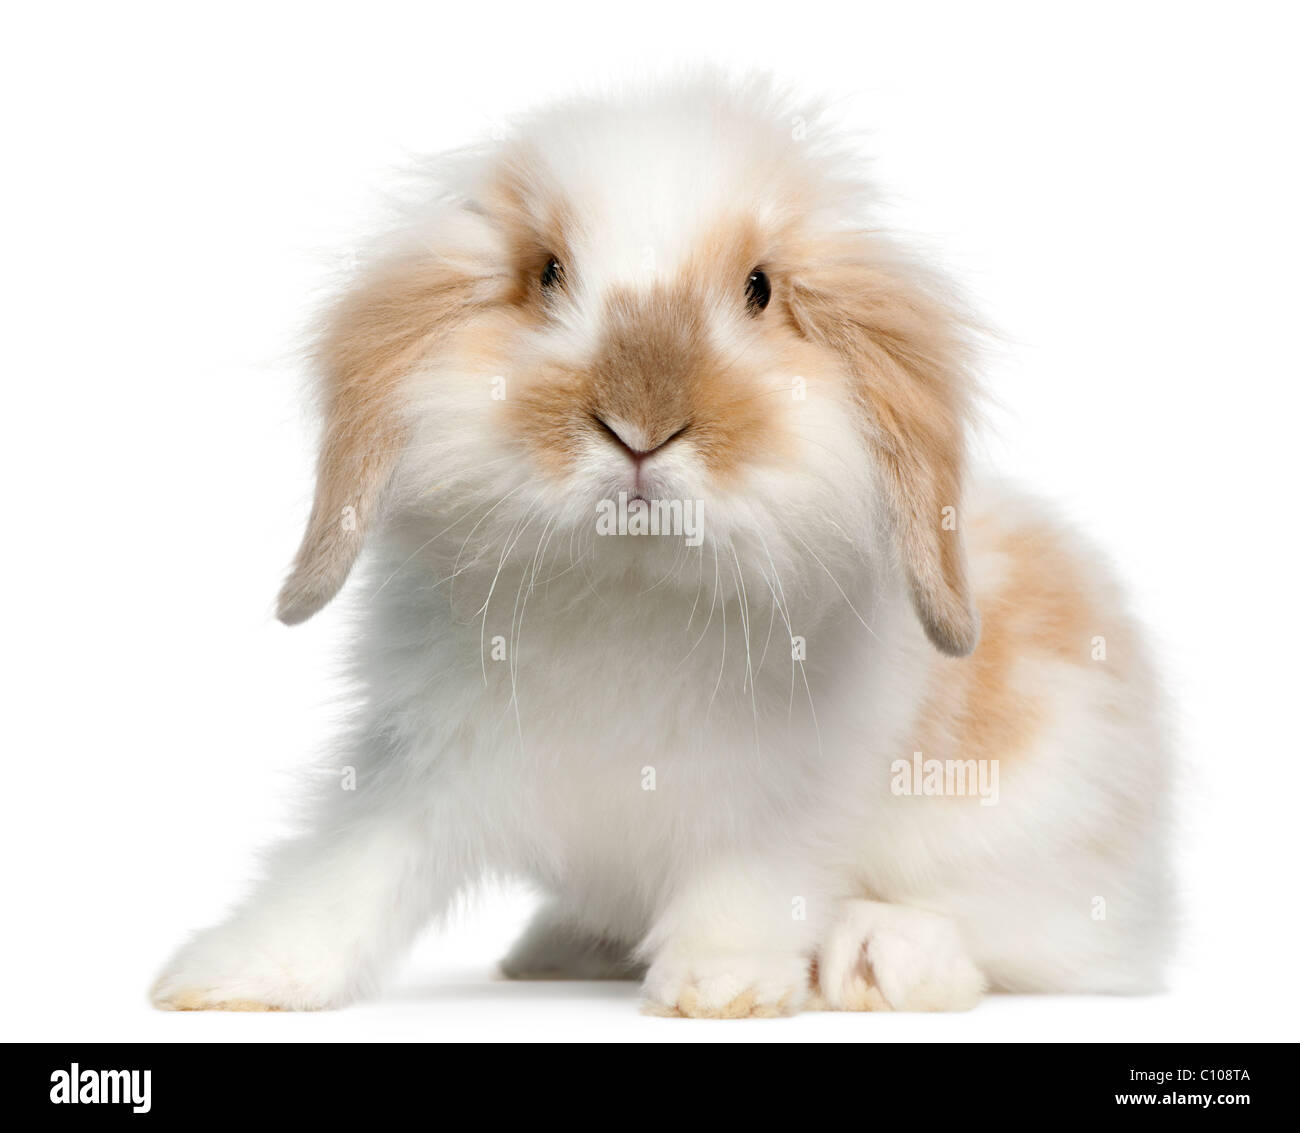 Lapin bélier, 10 years old, in front of white background Photo Stock